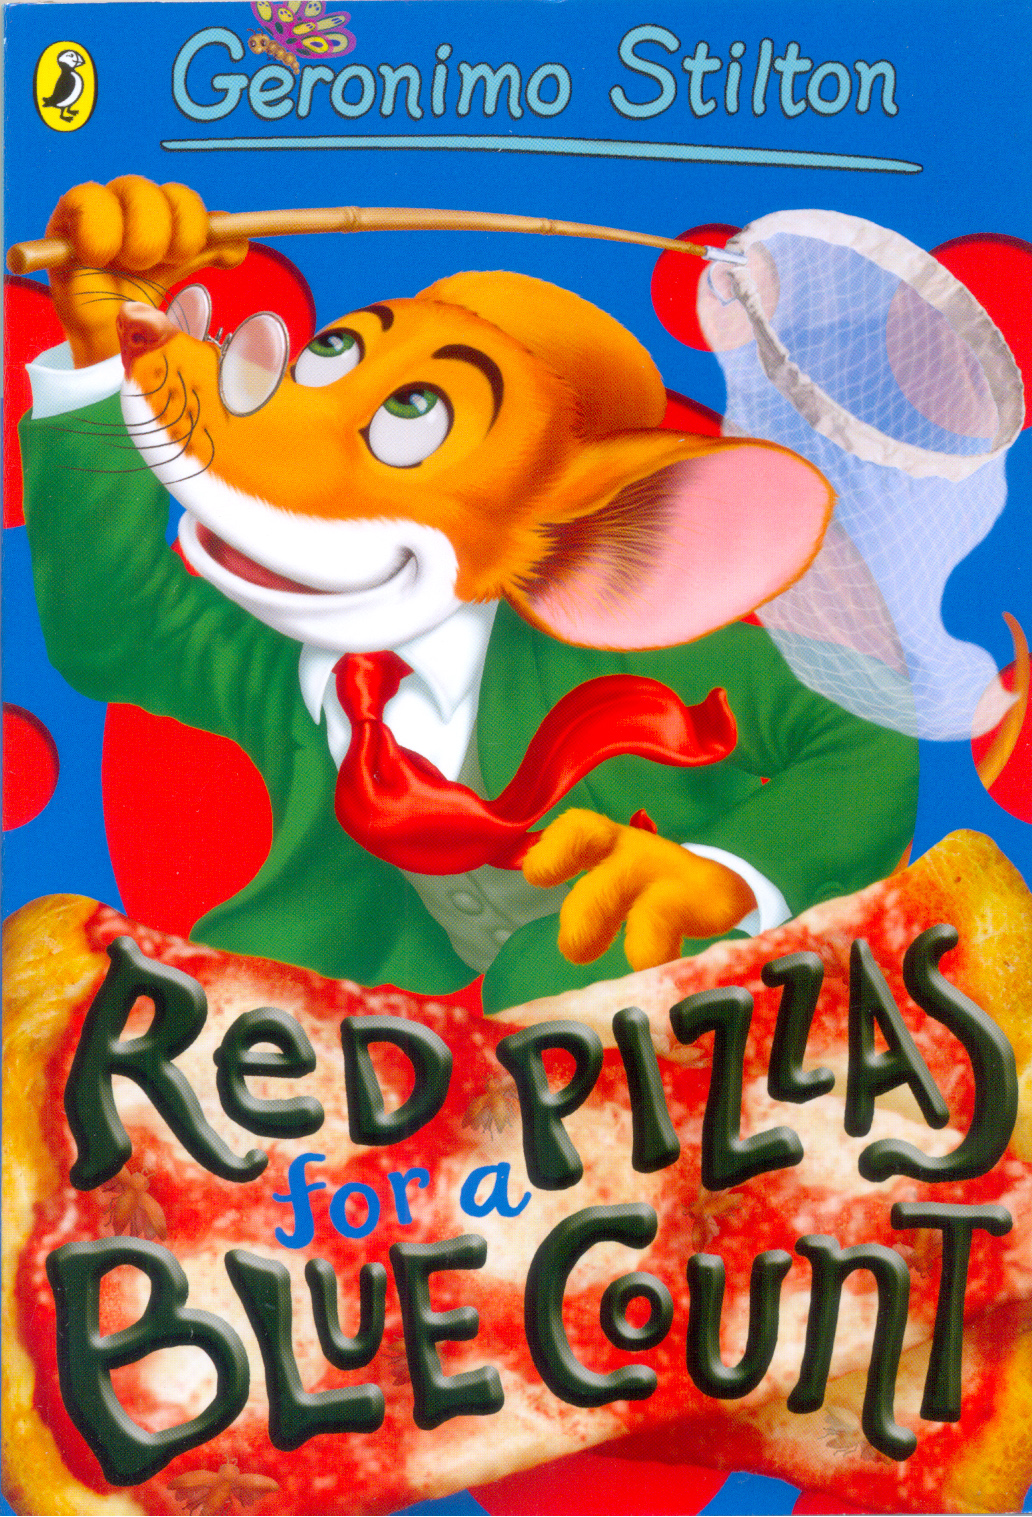 Geronimo Stilton : Red Pizzas For A Blue Count